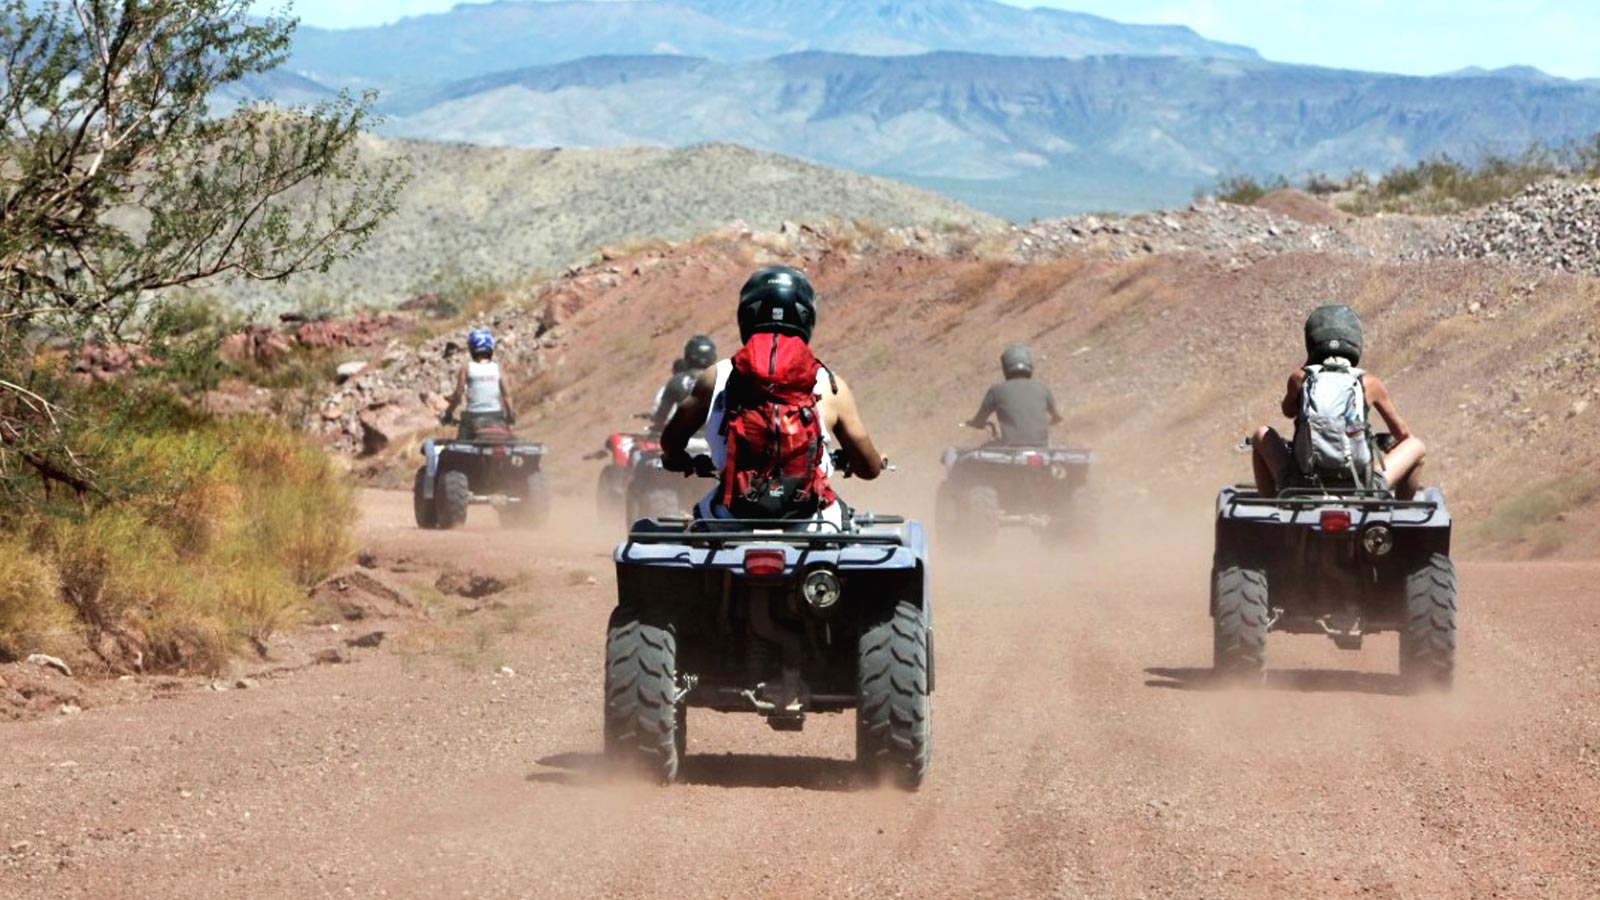 Grand Canyon Helicopter and ATV Adventure Tour – $699